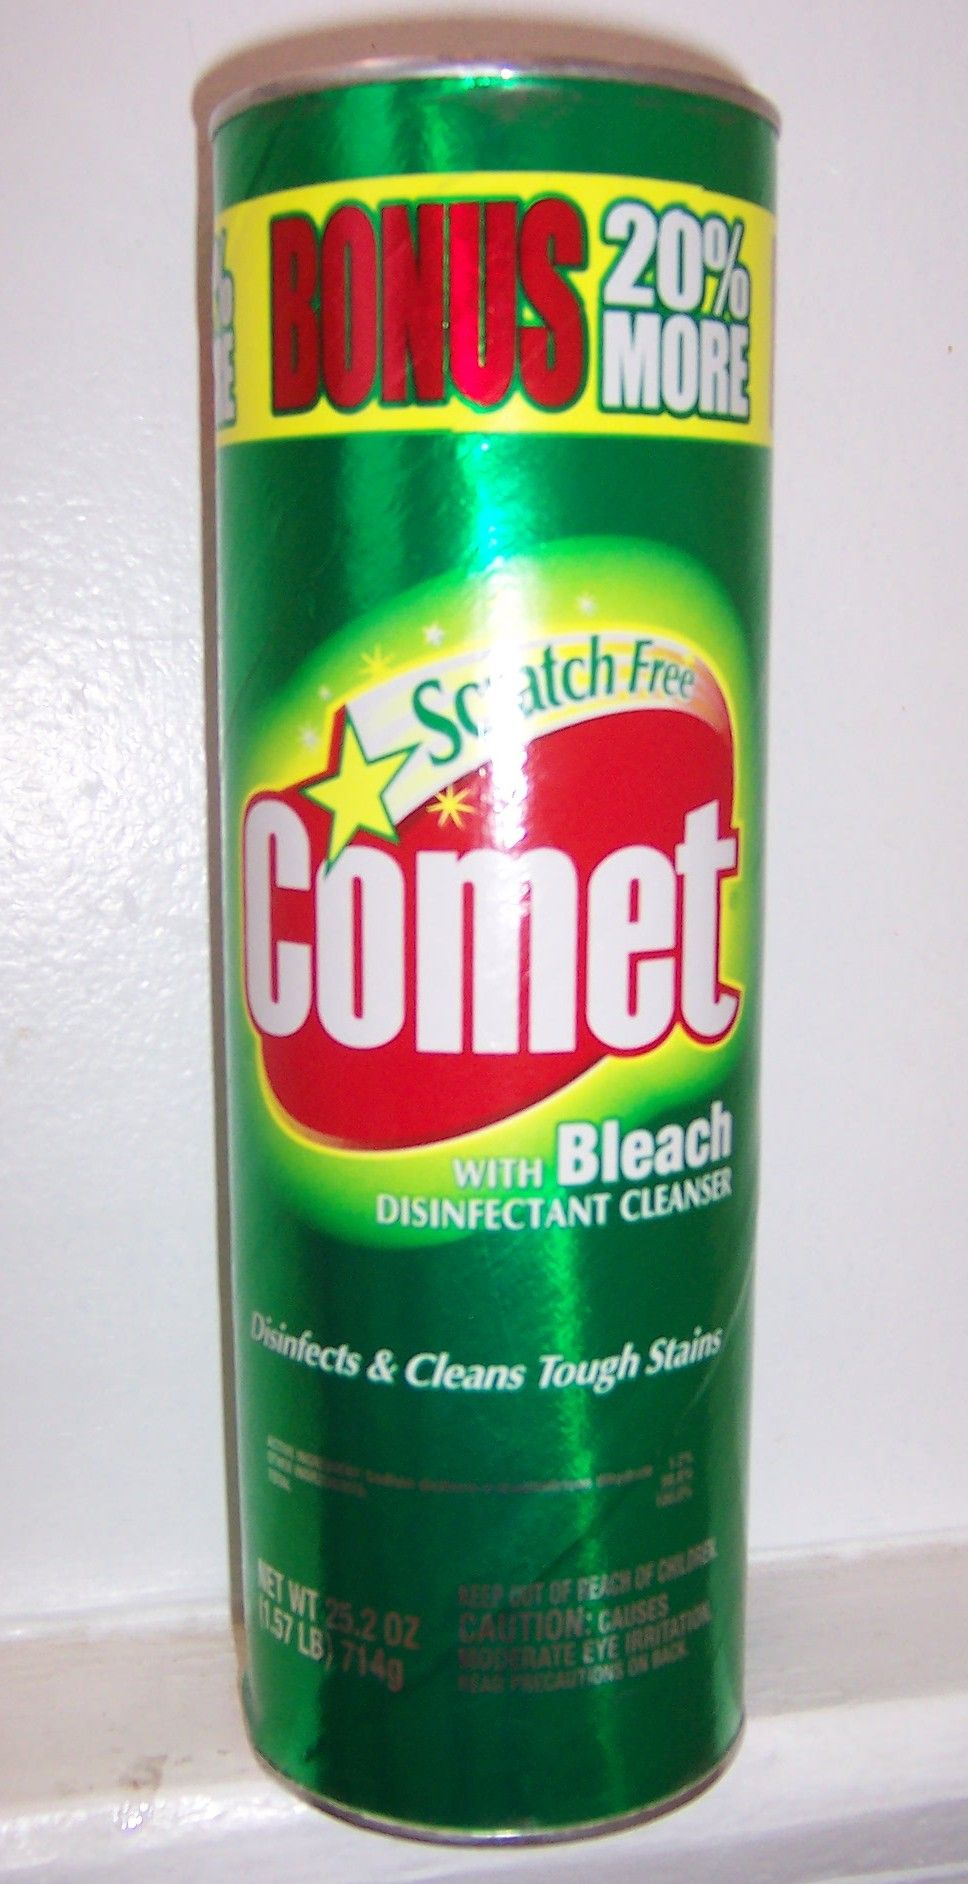 Bleaching powder for cleaning bathroom - Comet Cleaner Label Please Read Our Blog For Very Interesting Tips On A Variety Of Topics